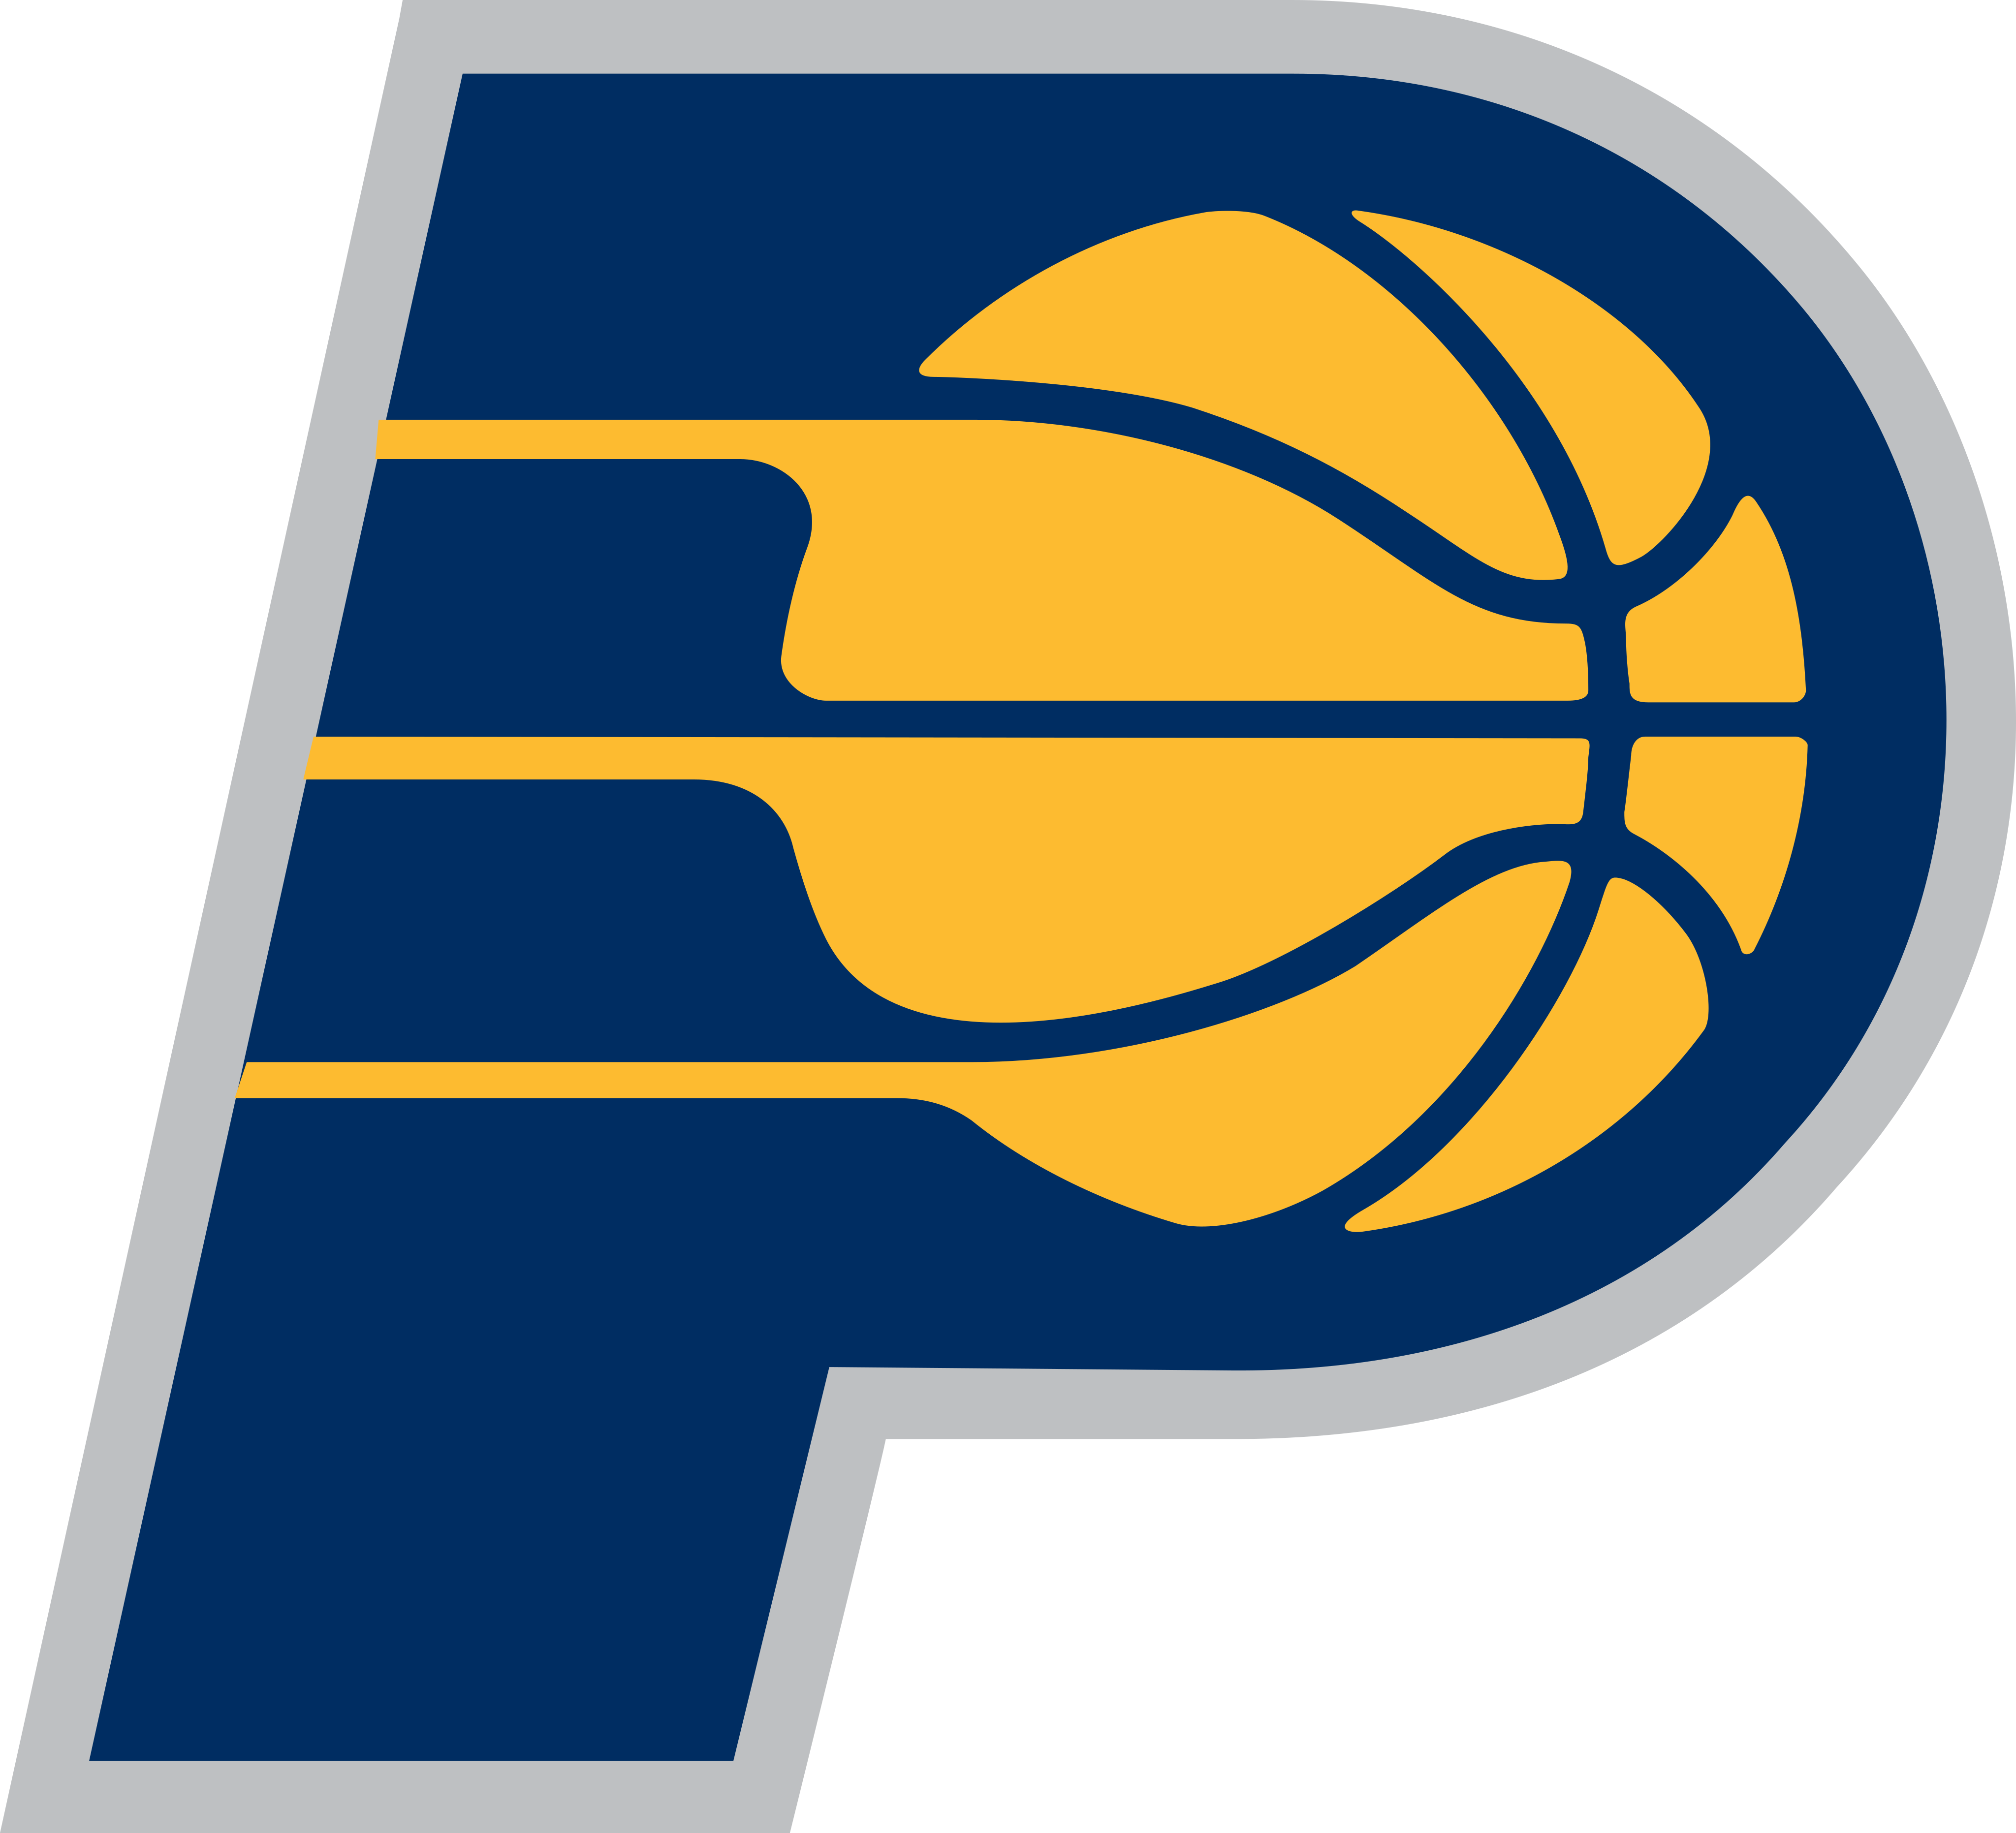 indiana pacers logo - Indiana Pacers Logo